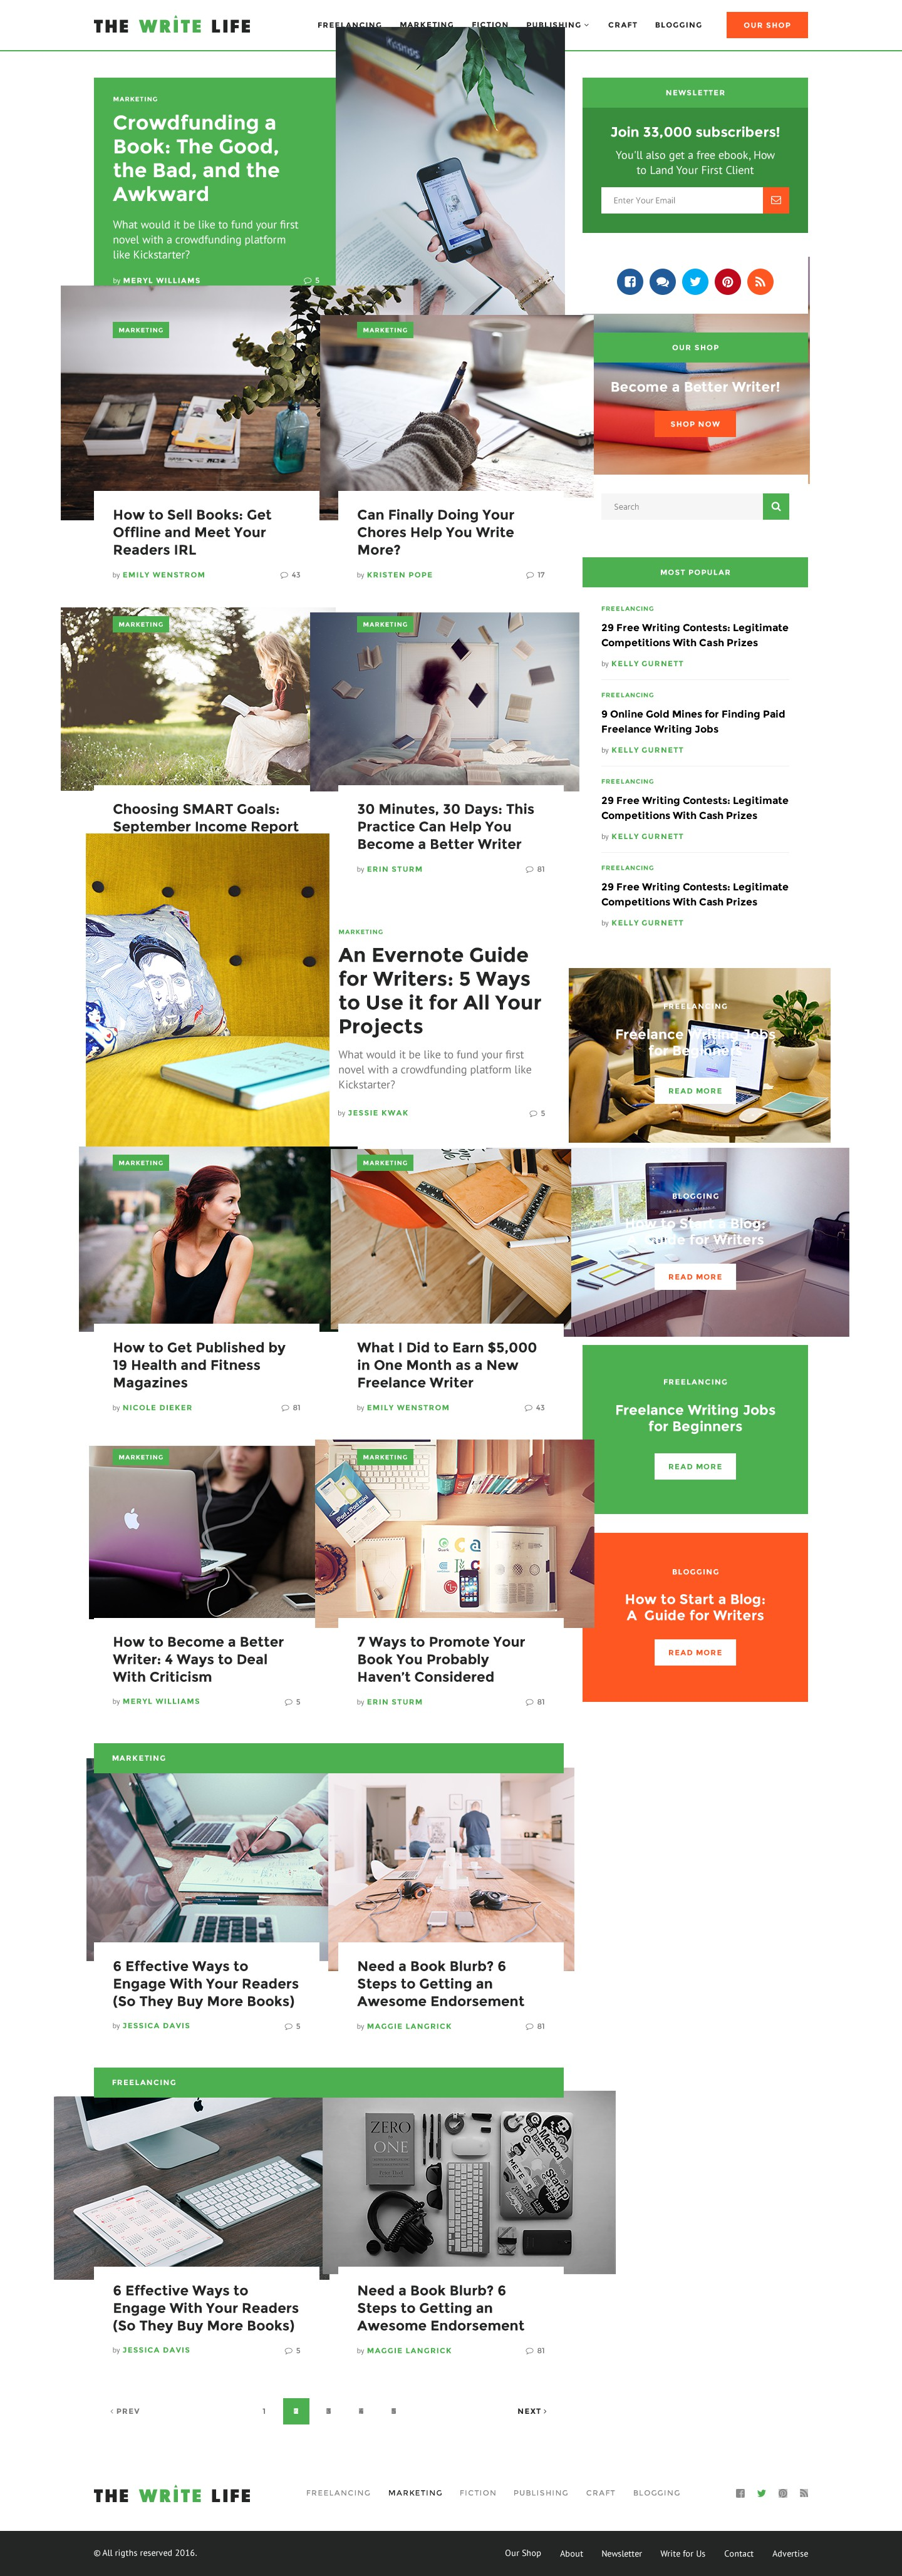 The Write Life, a popular site for writers, needs a website redesign